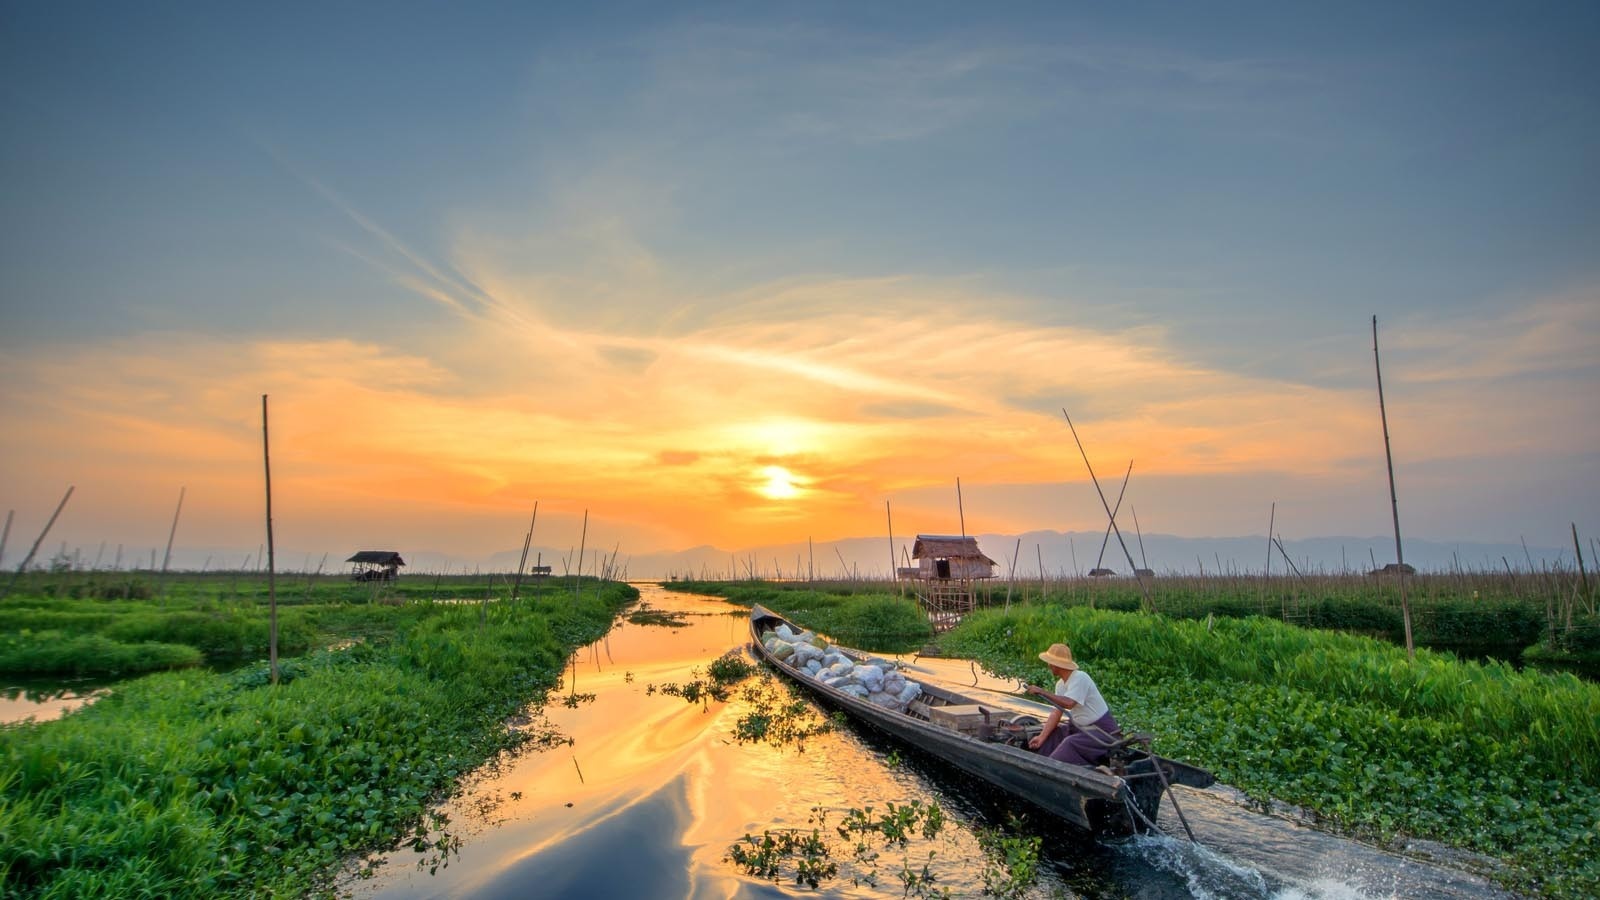 Inle091